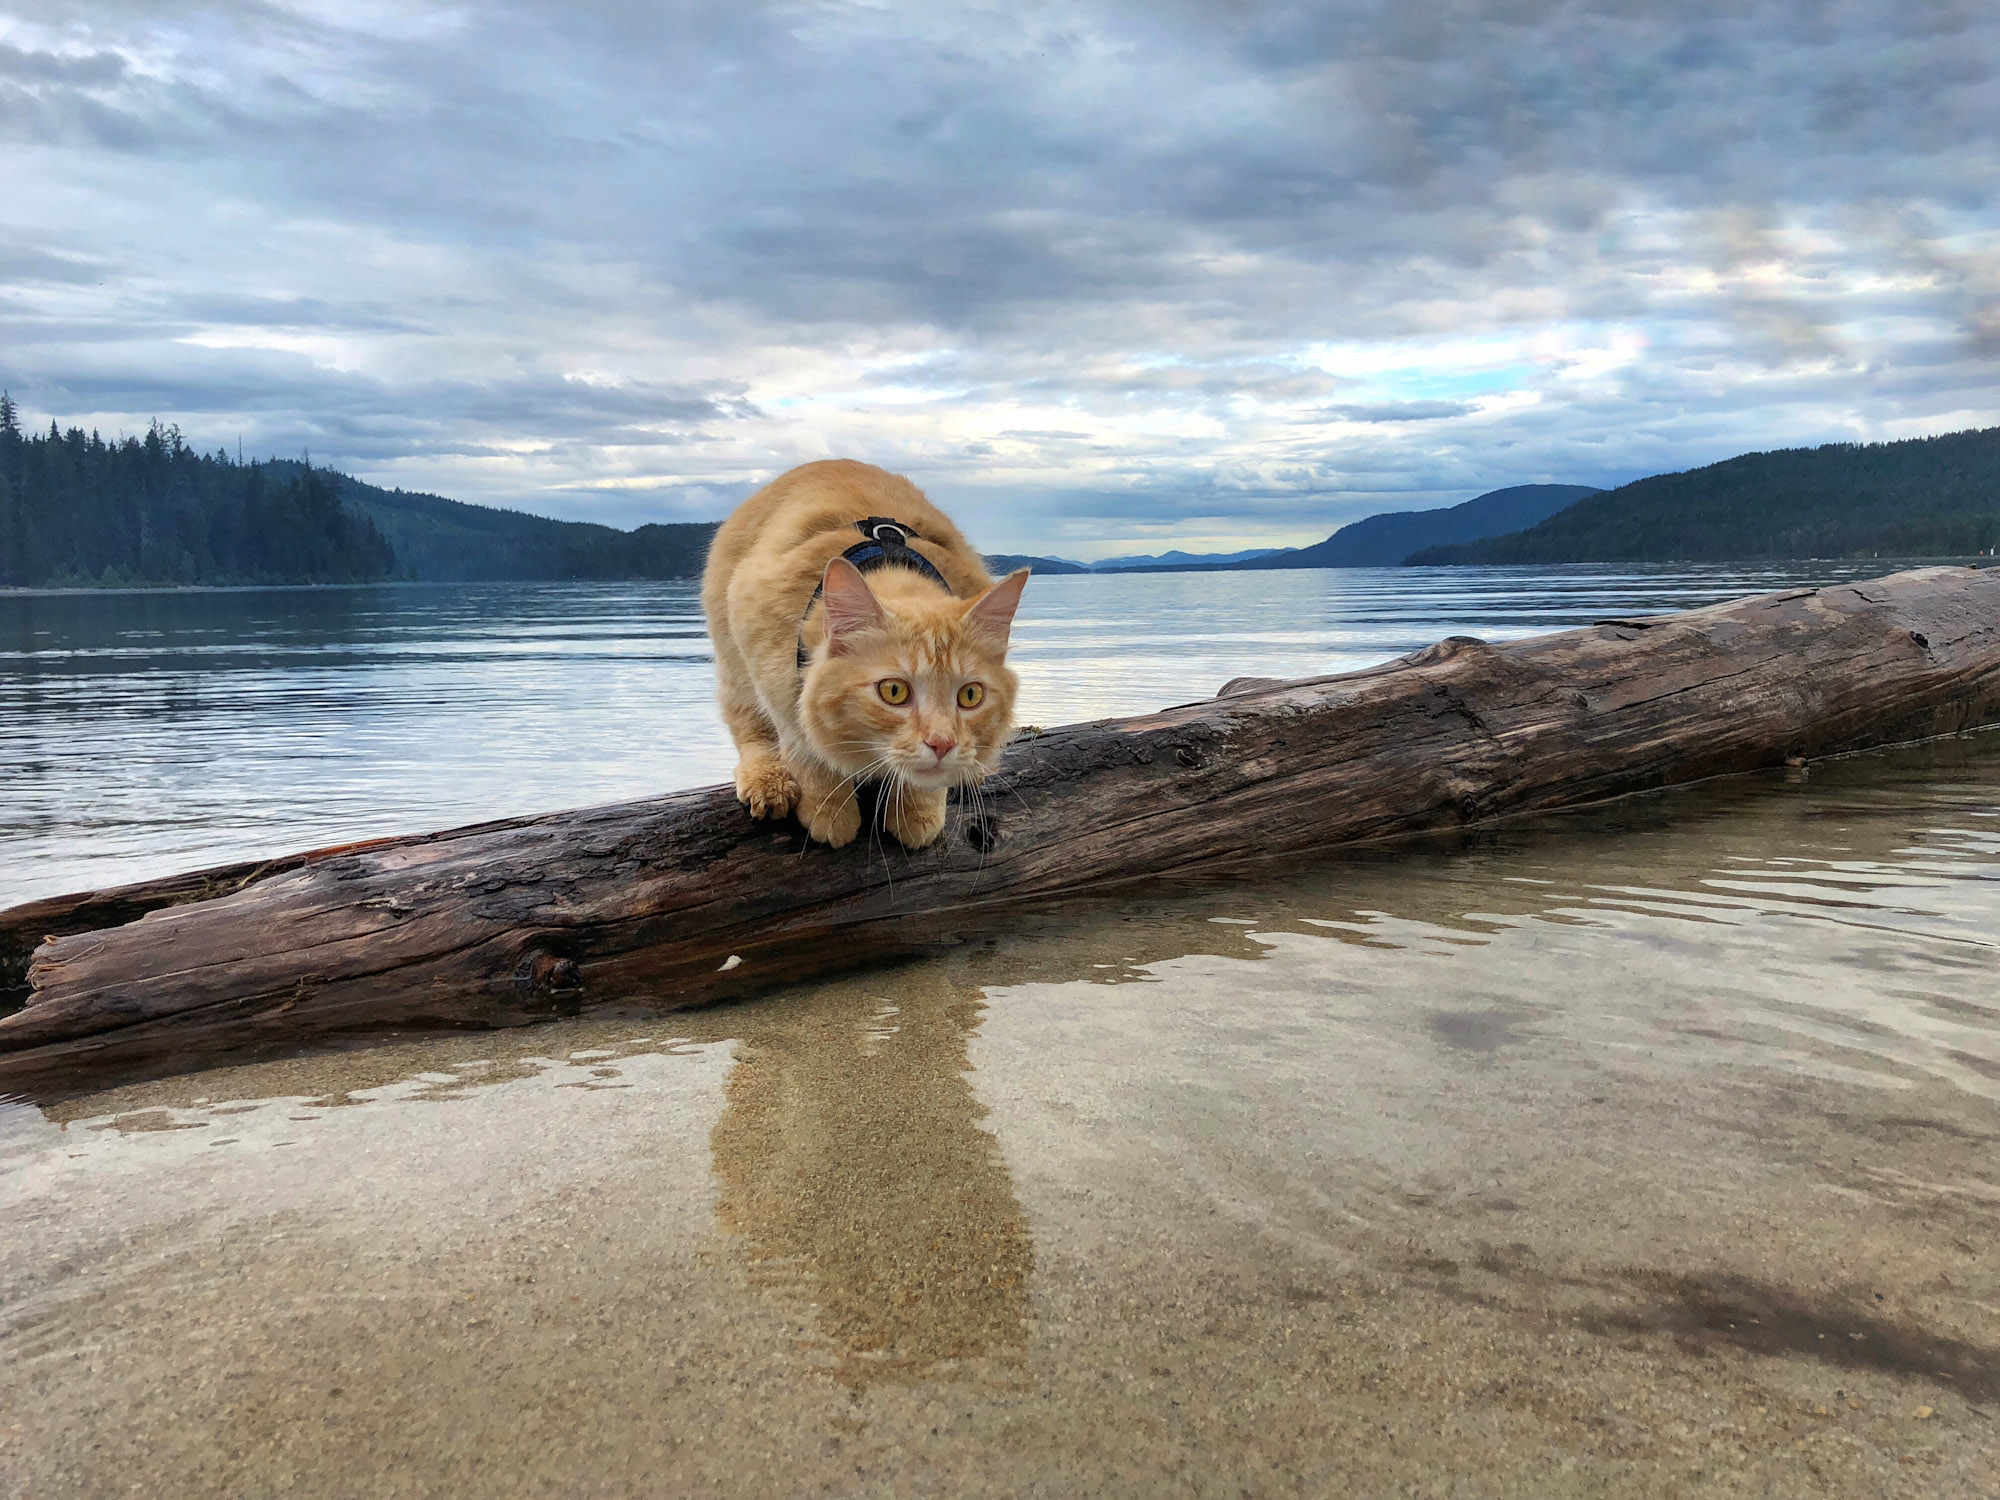 orange tabby poses on log in water